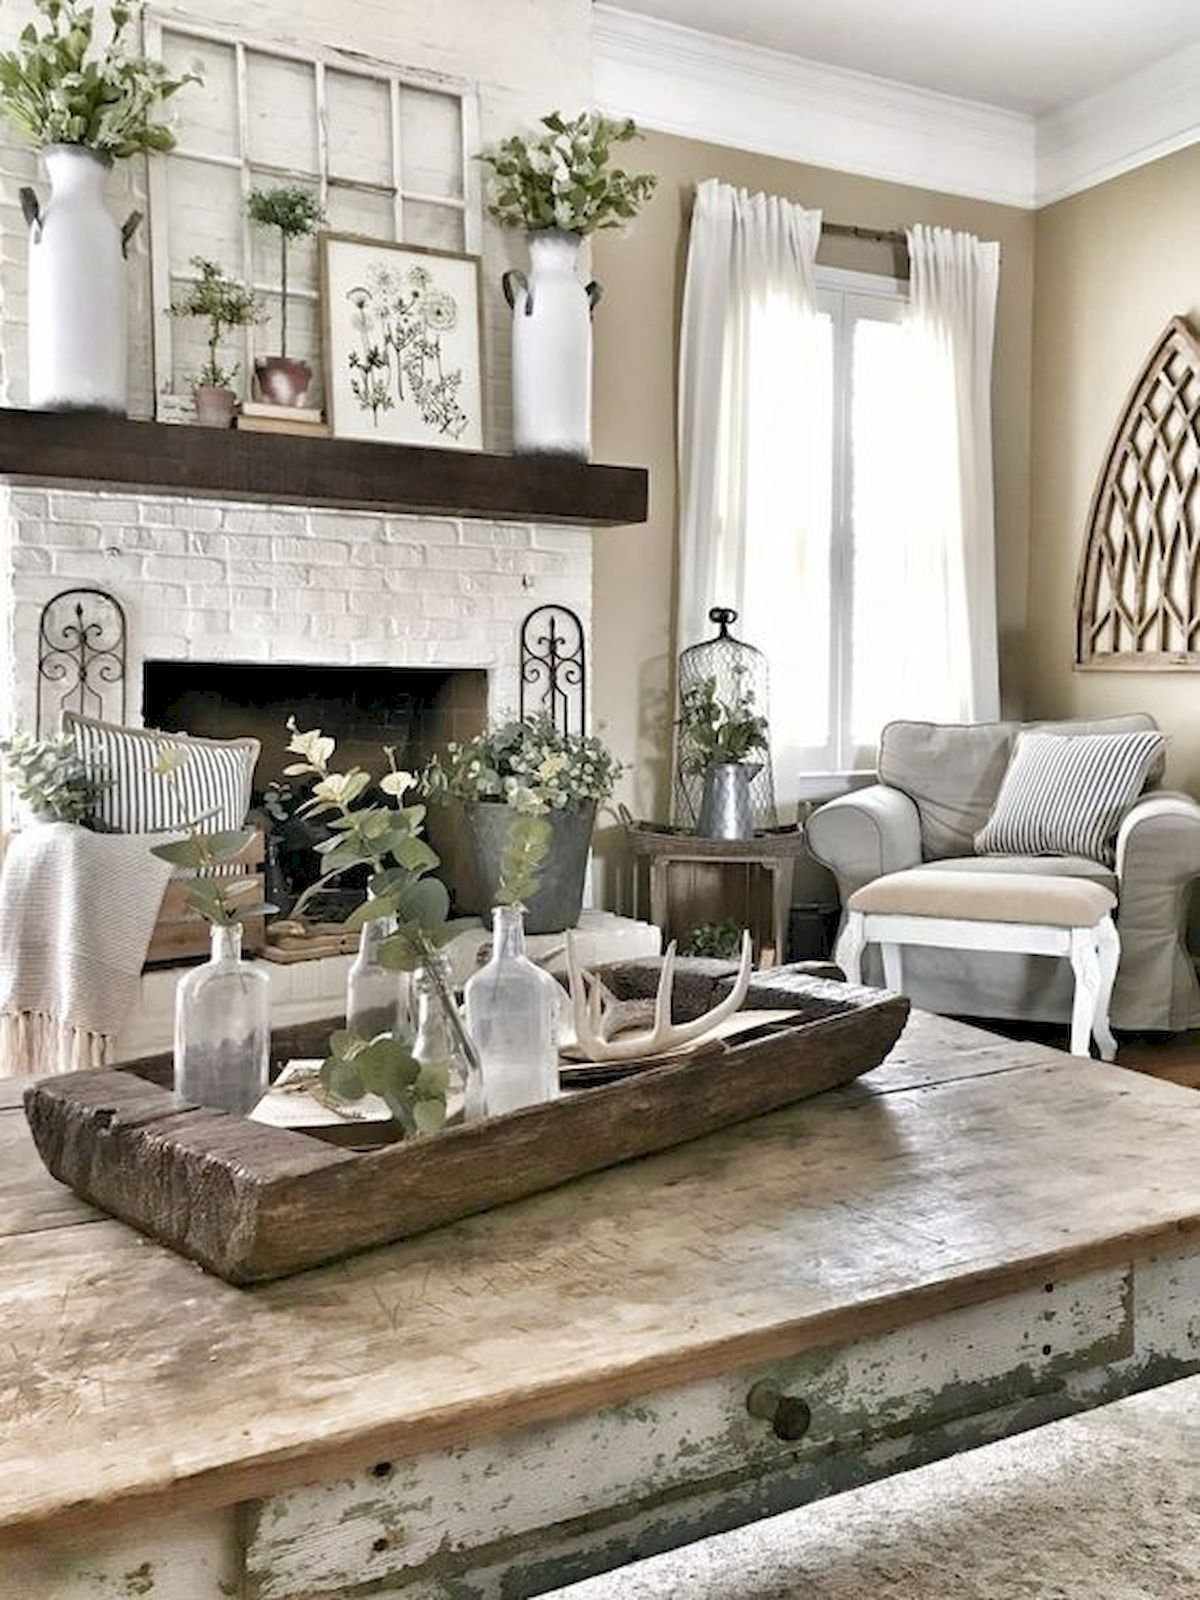 50 Decorating Living Rooms Ideas 2020 In 2020 Farmhouse D